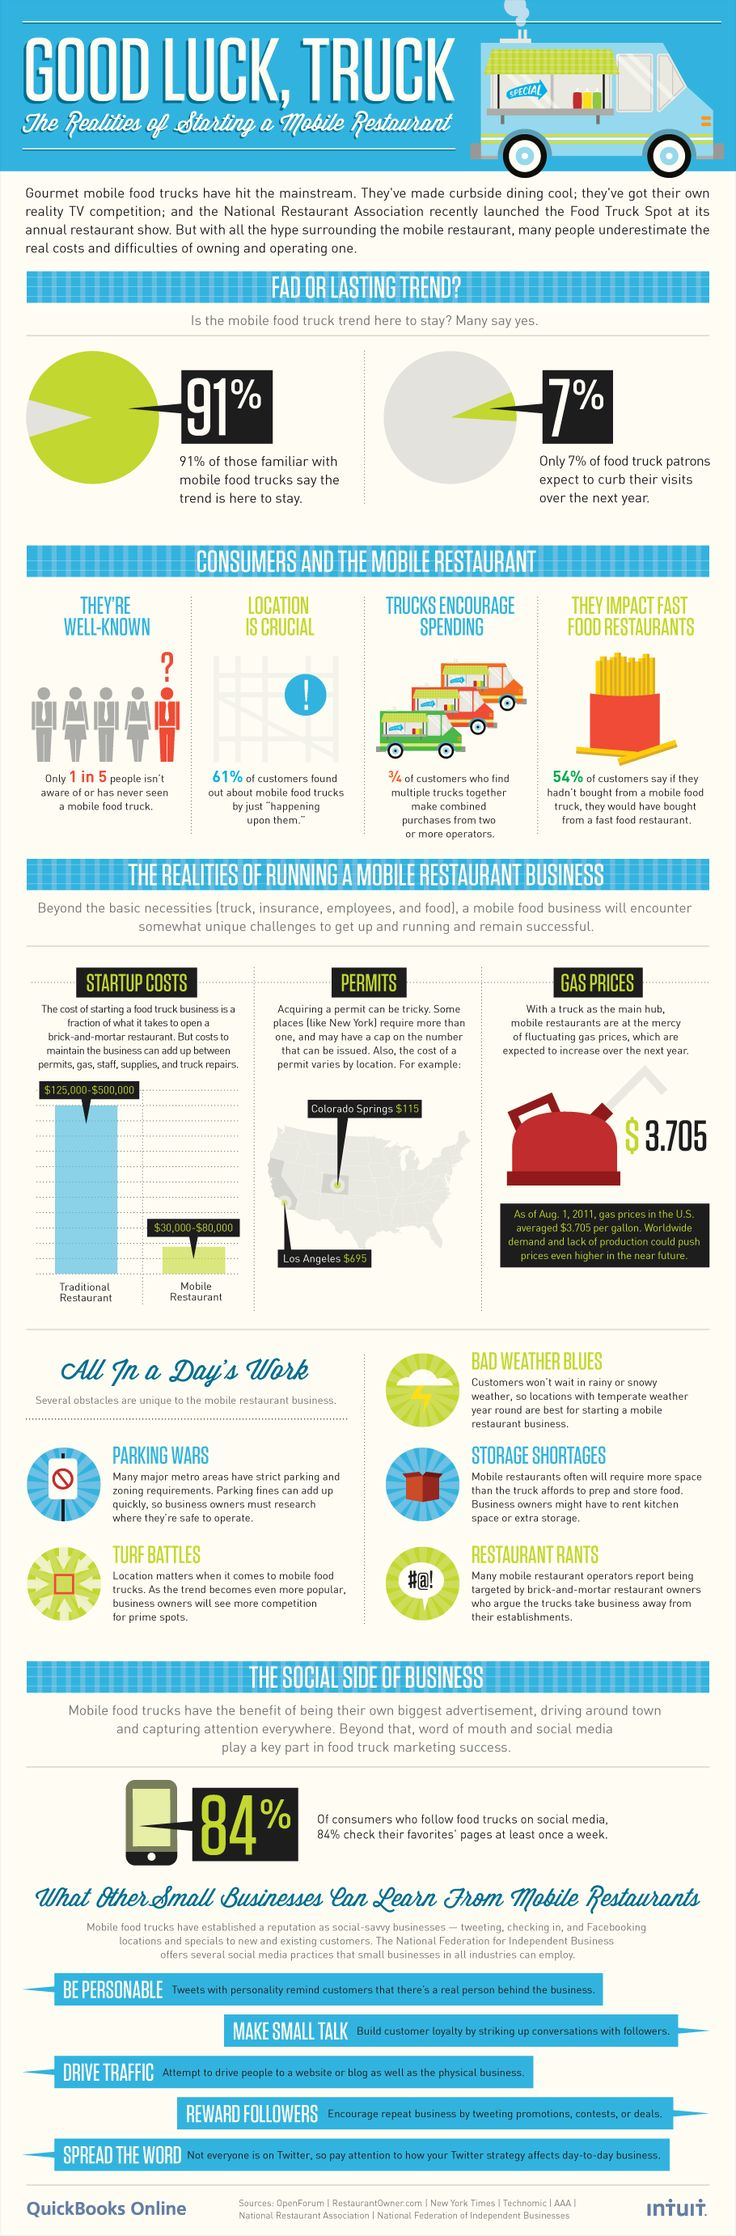 Running Food Truck Business - iNFOGRAPHiCs MANiAiNFOGRAPHiCsMANiA